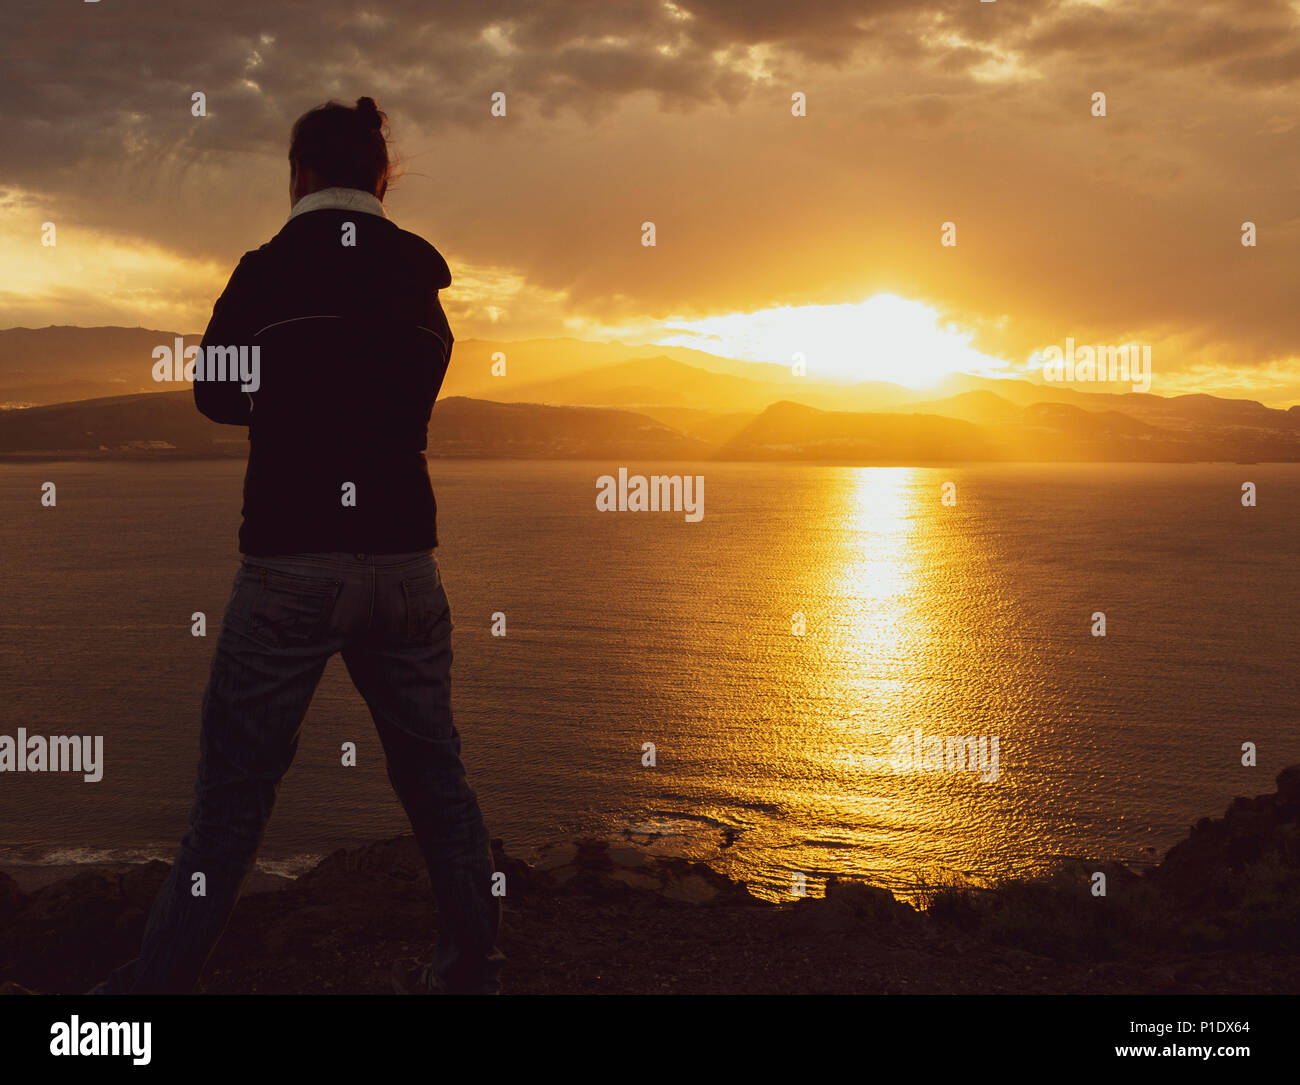 Rear view of woman looking out over the sea from high cliffs at sunset. Female mental health/depression, mental illness,loneliness...,concept image - Stock Image